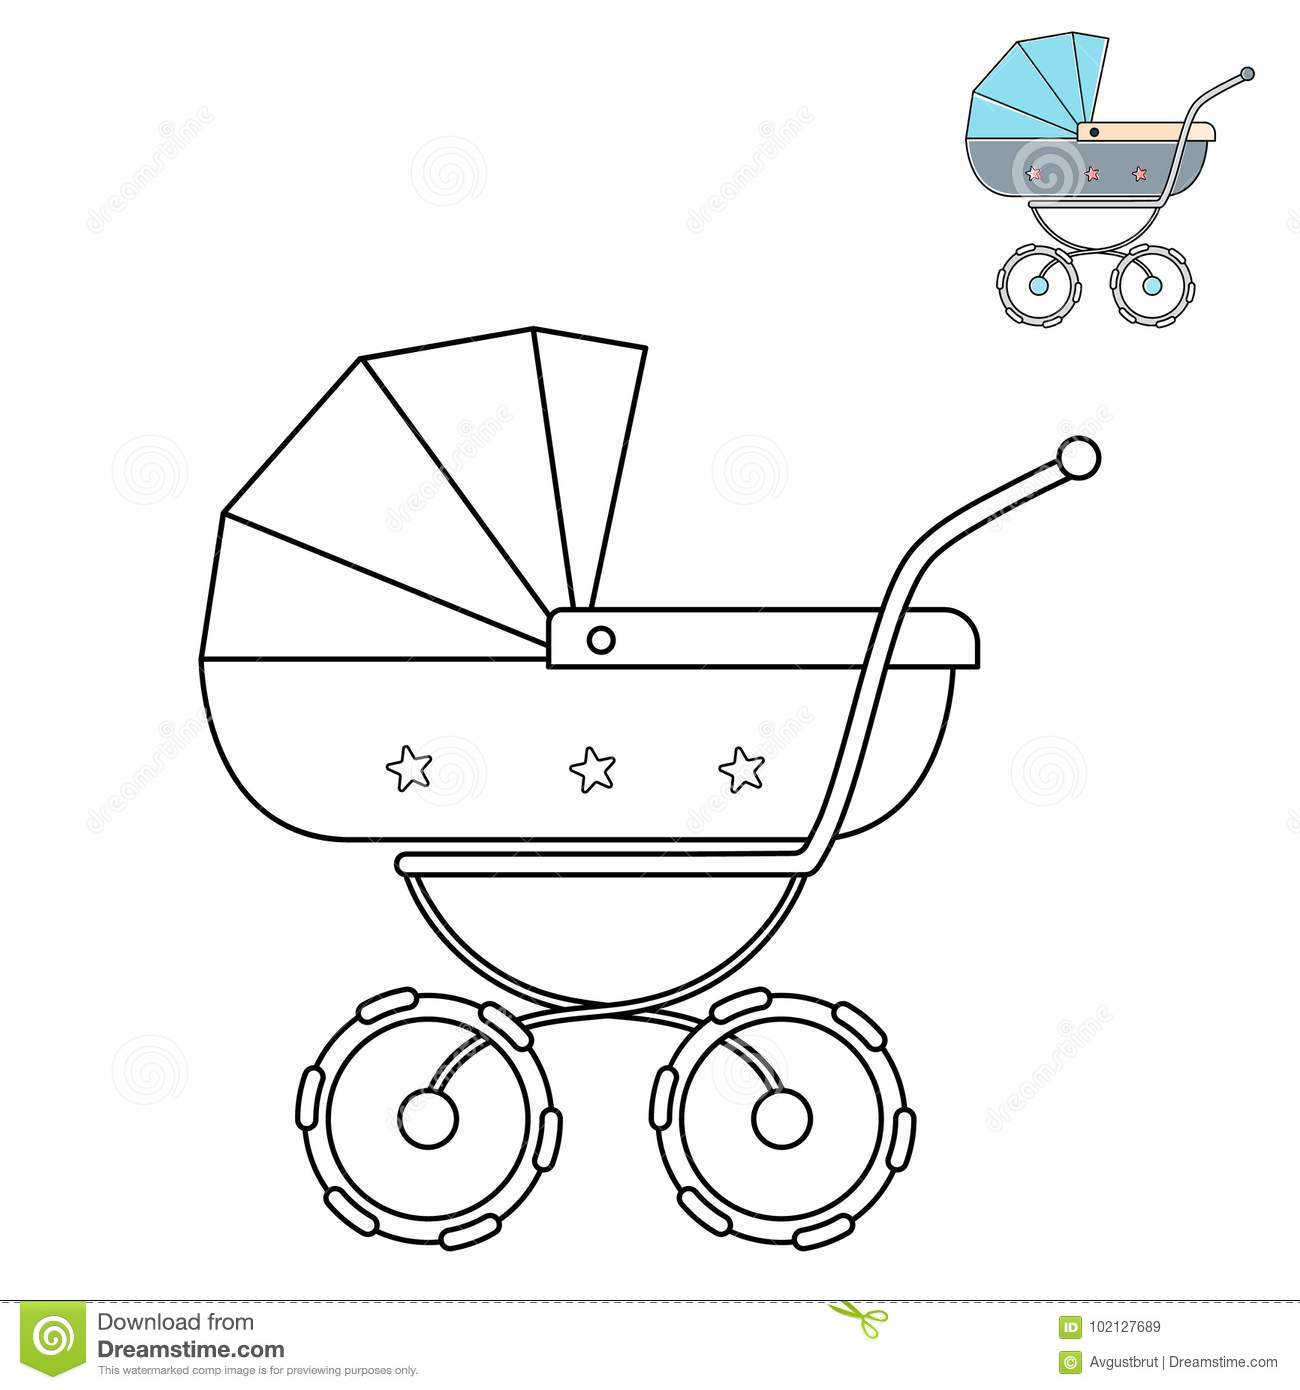 Baby Stroller Black And White Line Drawing Coloring Book